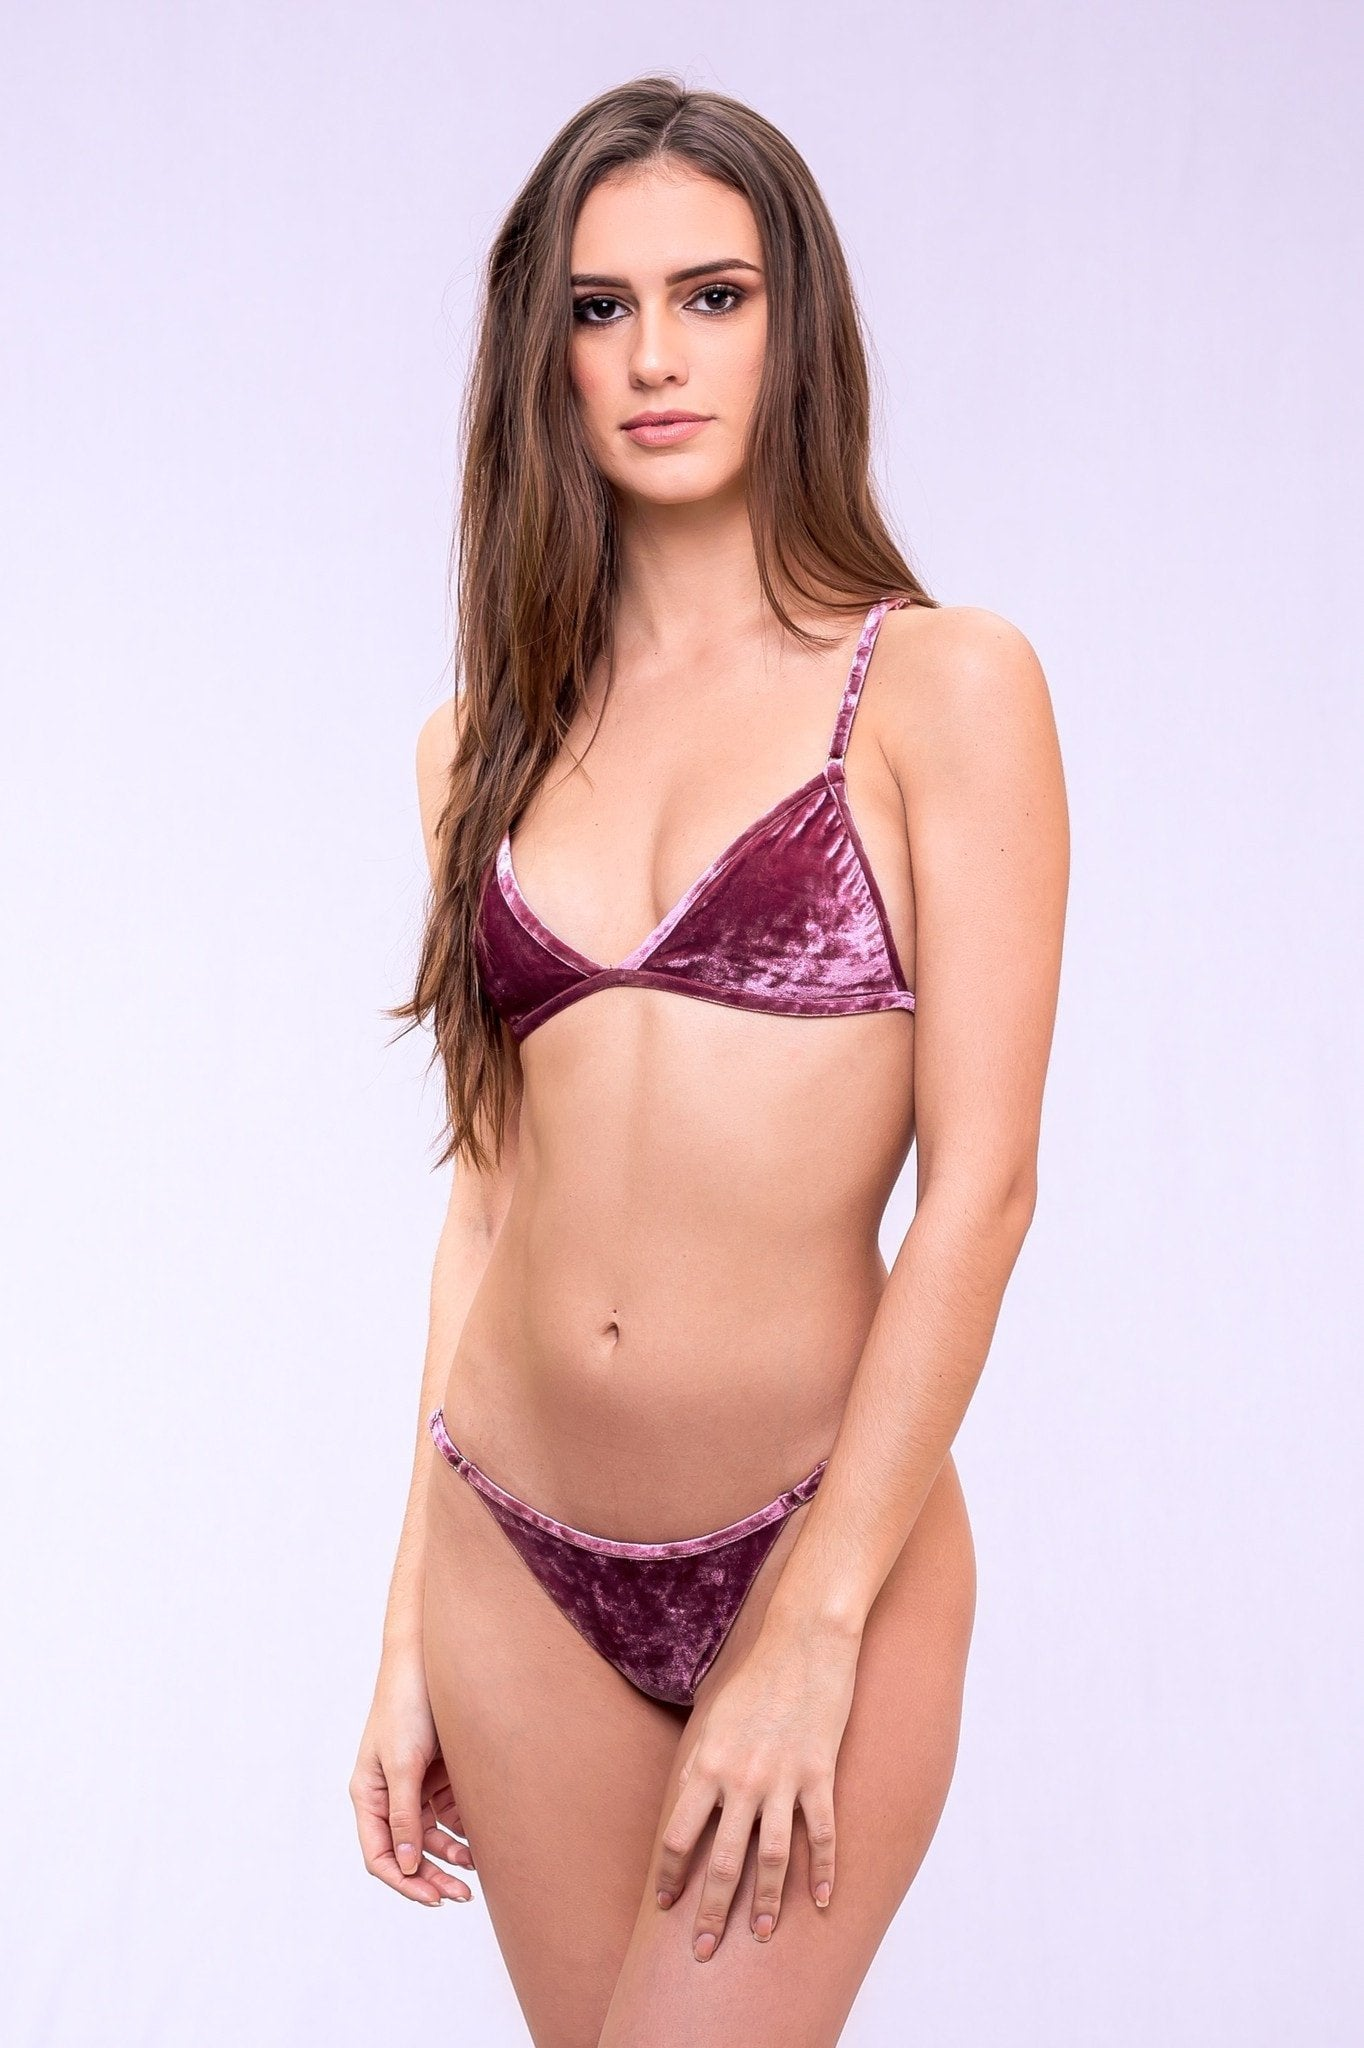 2fa7530c51d91 dbrie ali bikini top in rose quartz velvet